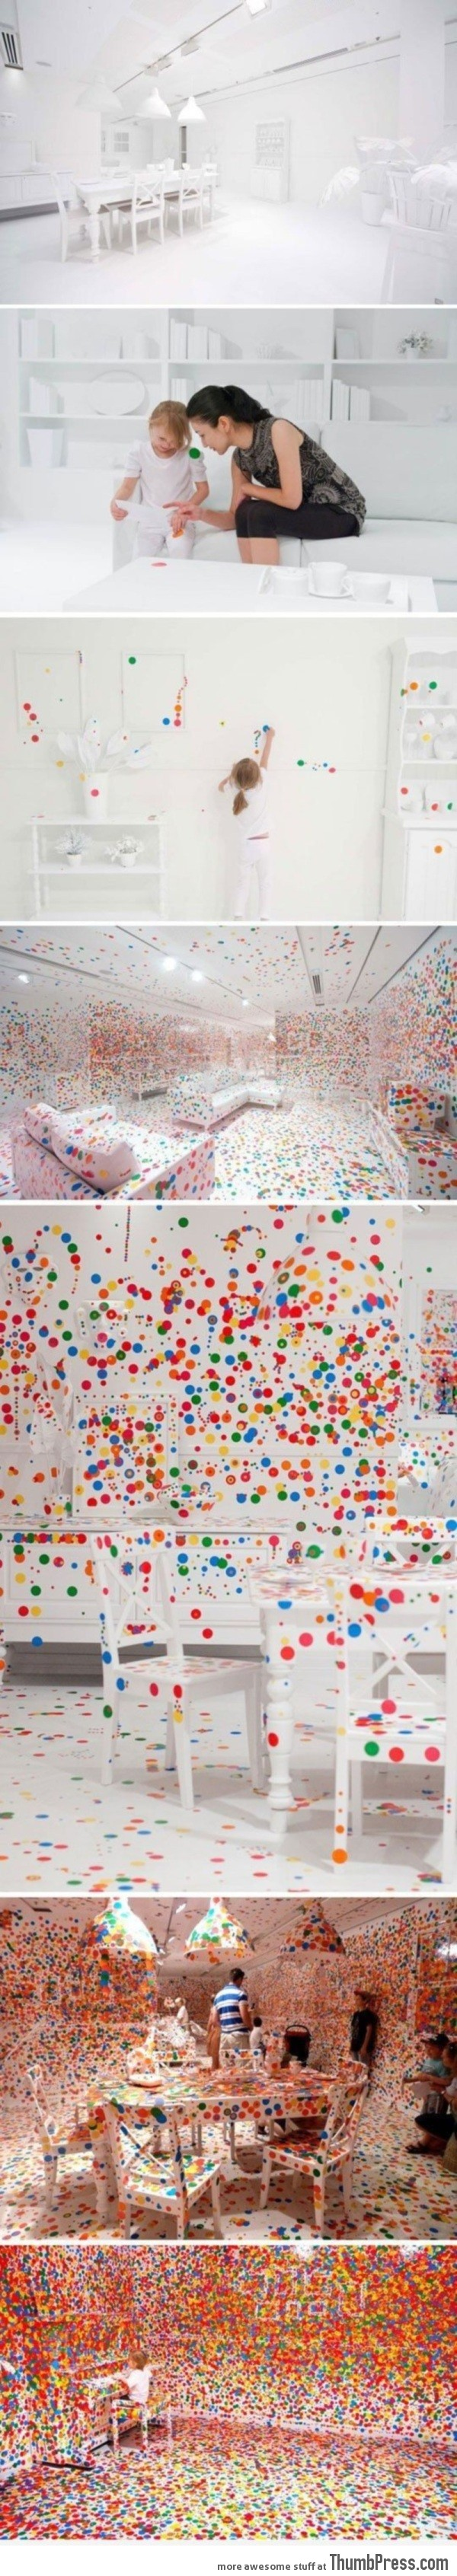 What happens when you give kids thousands of stickers